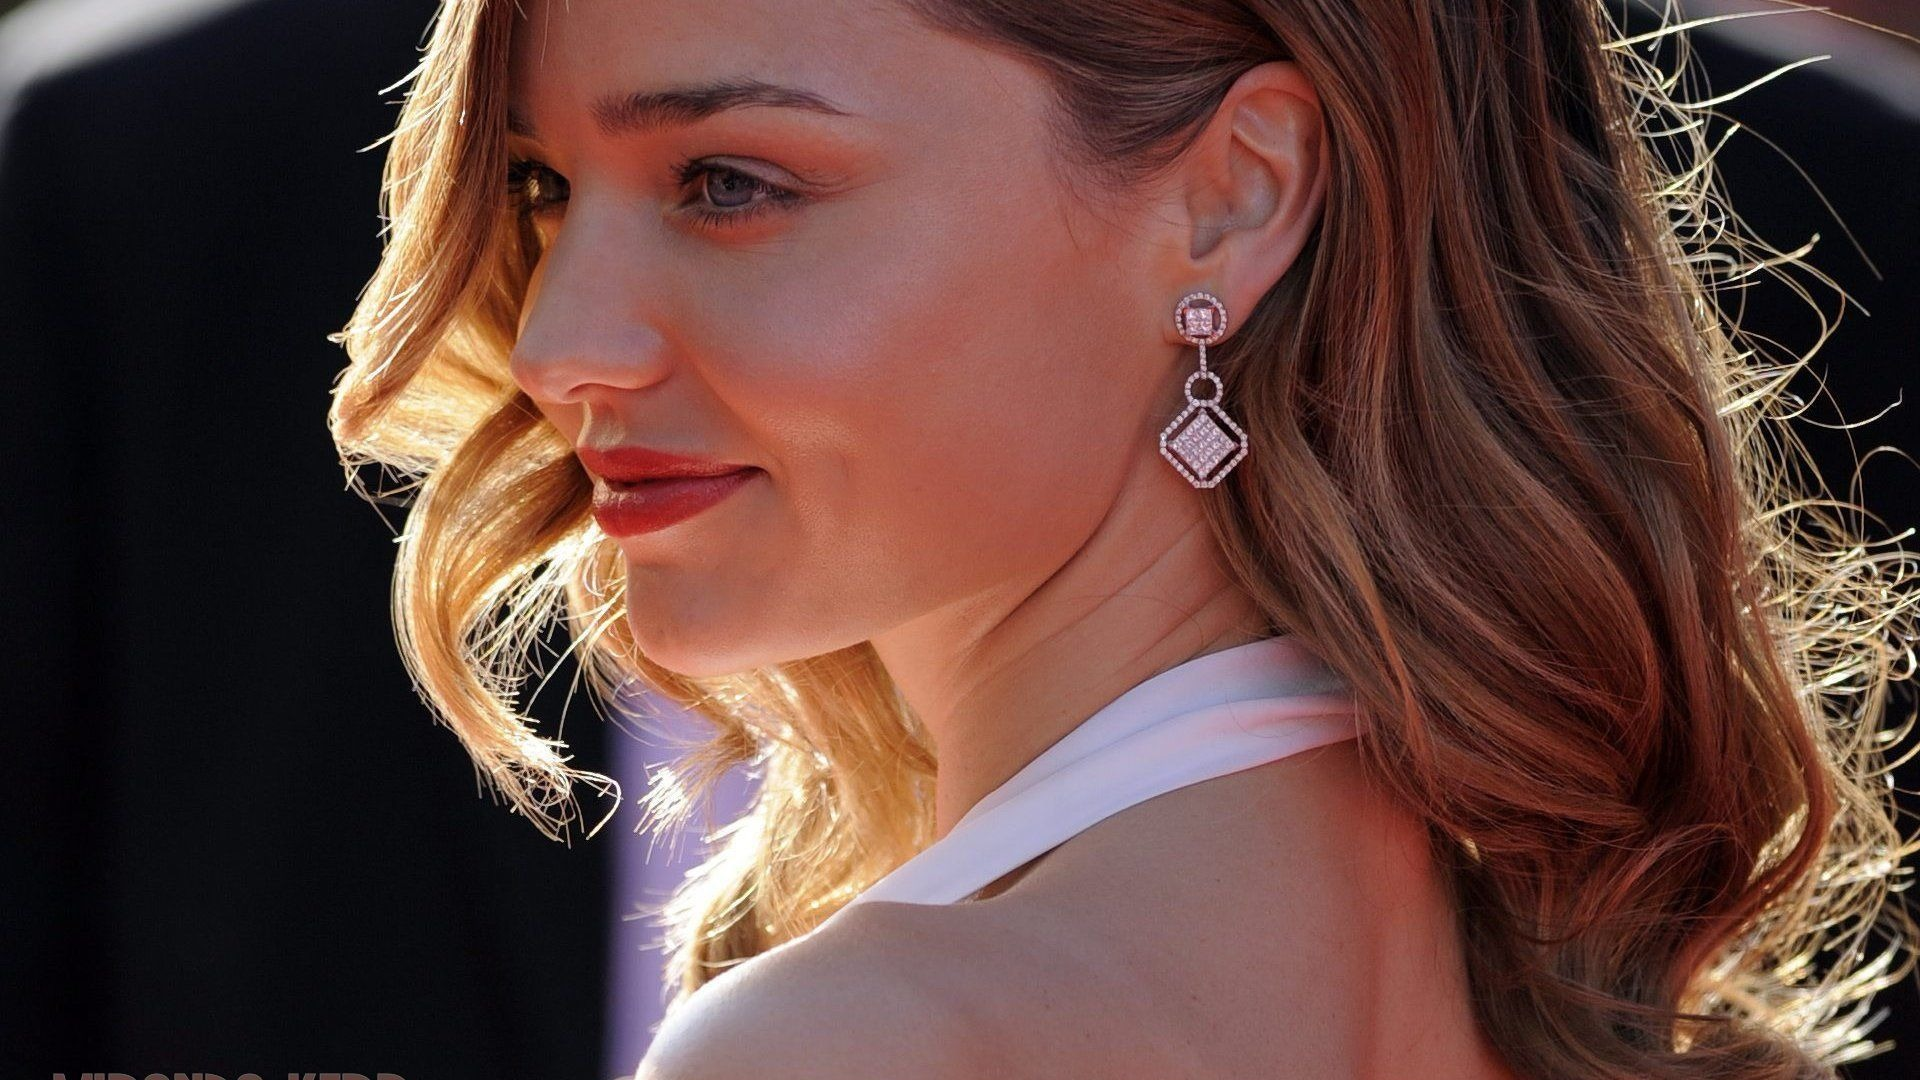 Miranda Kerr #027 - 1920x1080 Wallpaper Download ...